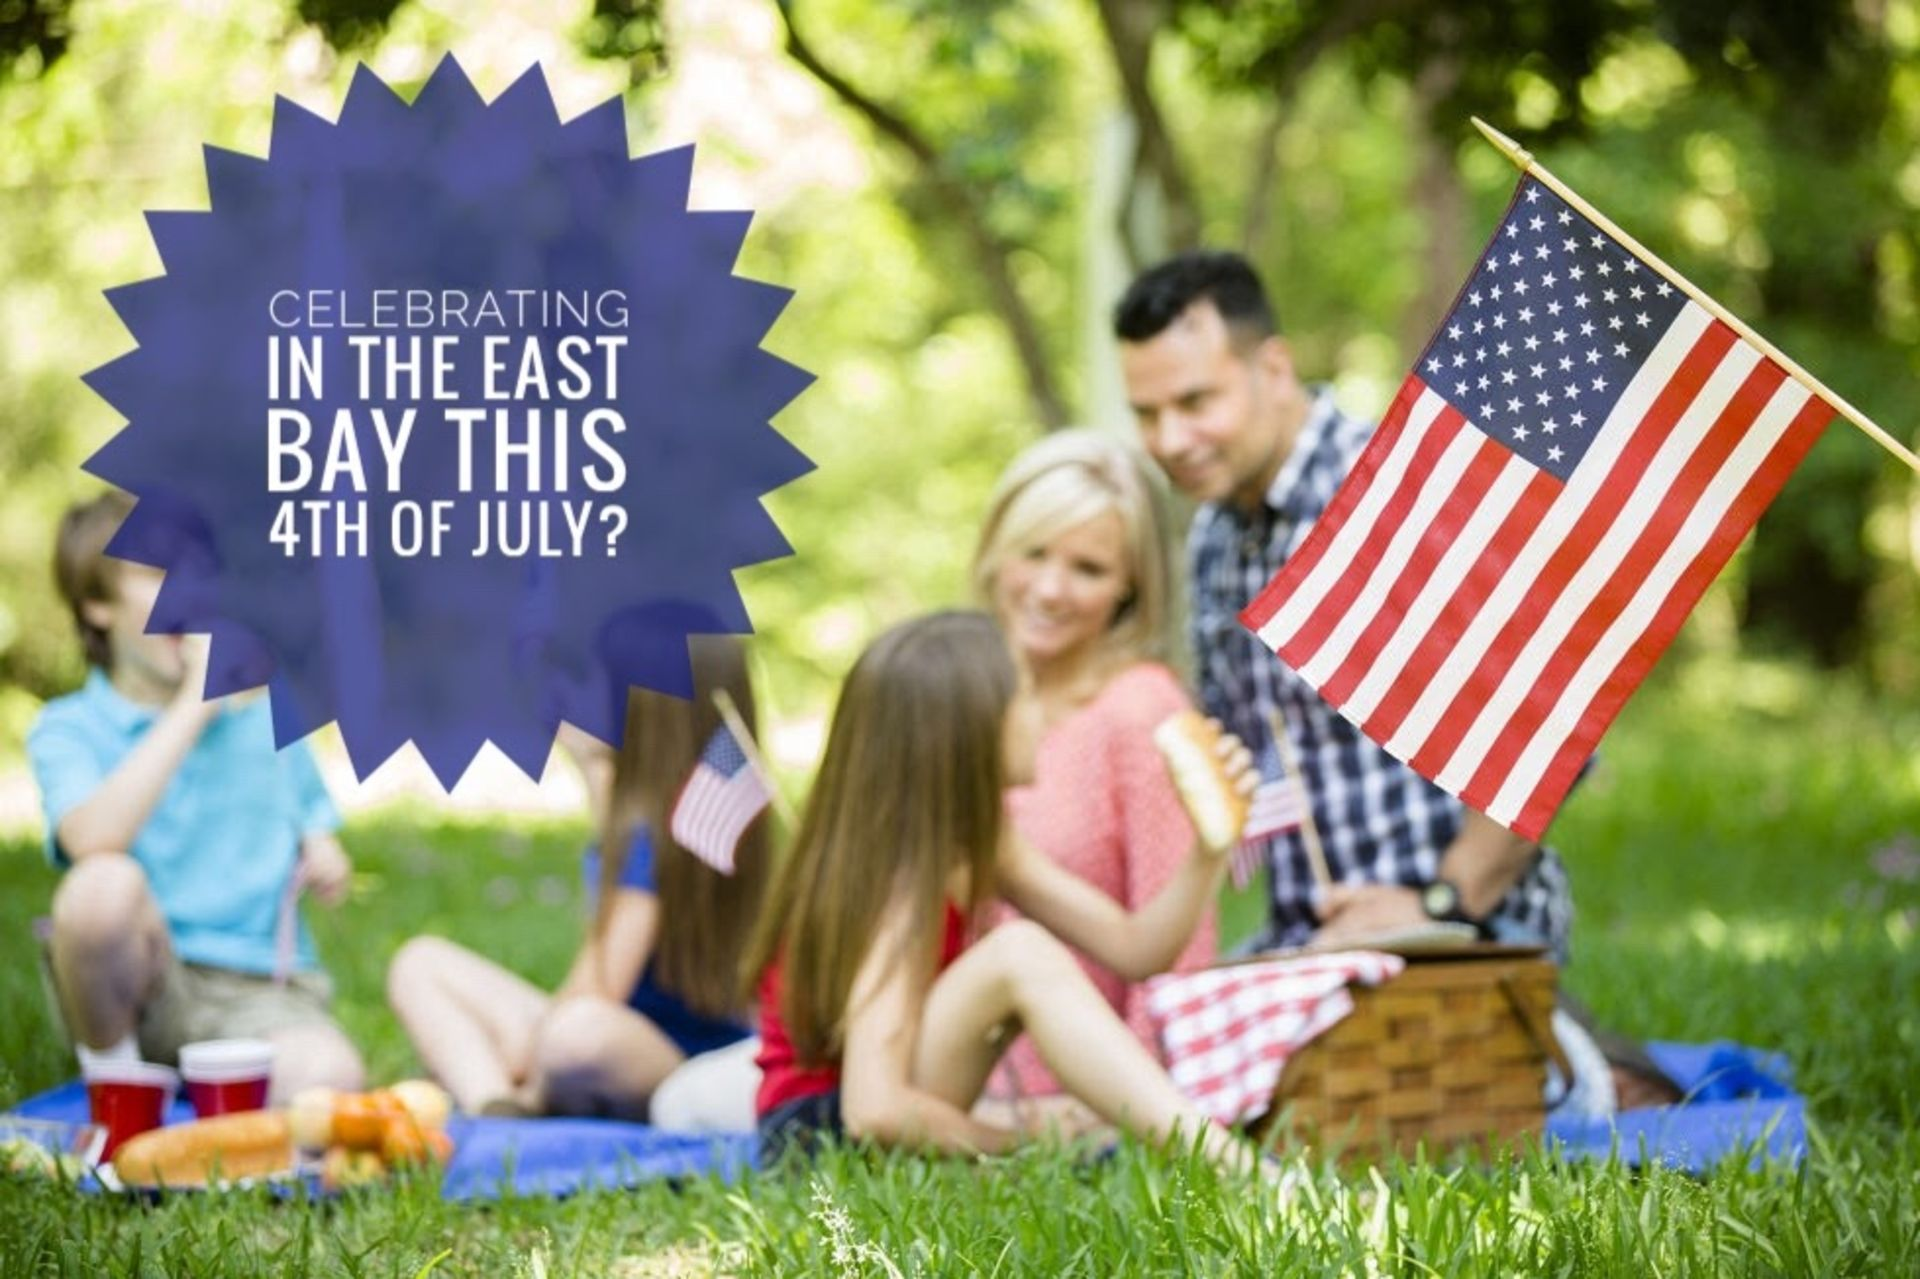 Staying in the East Bay this 4th of July?